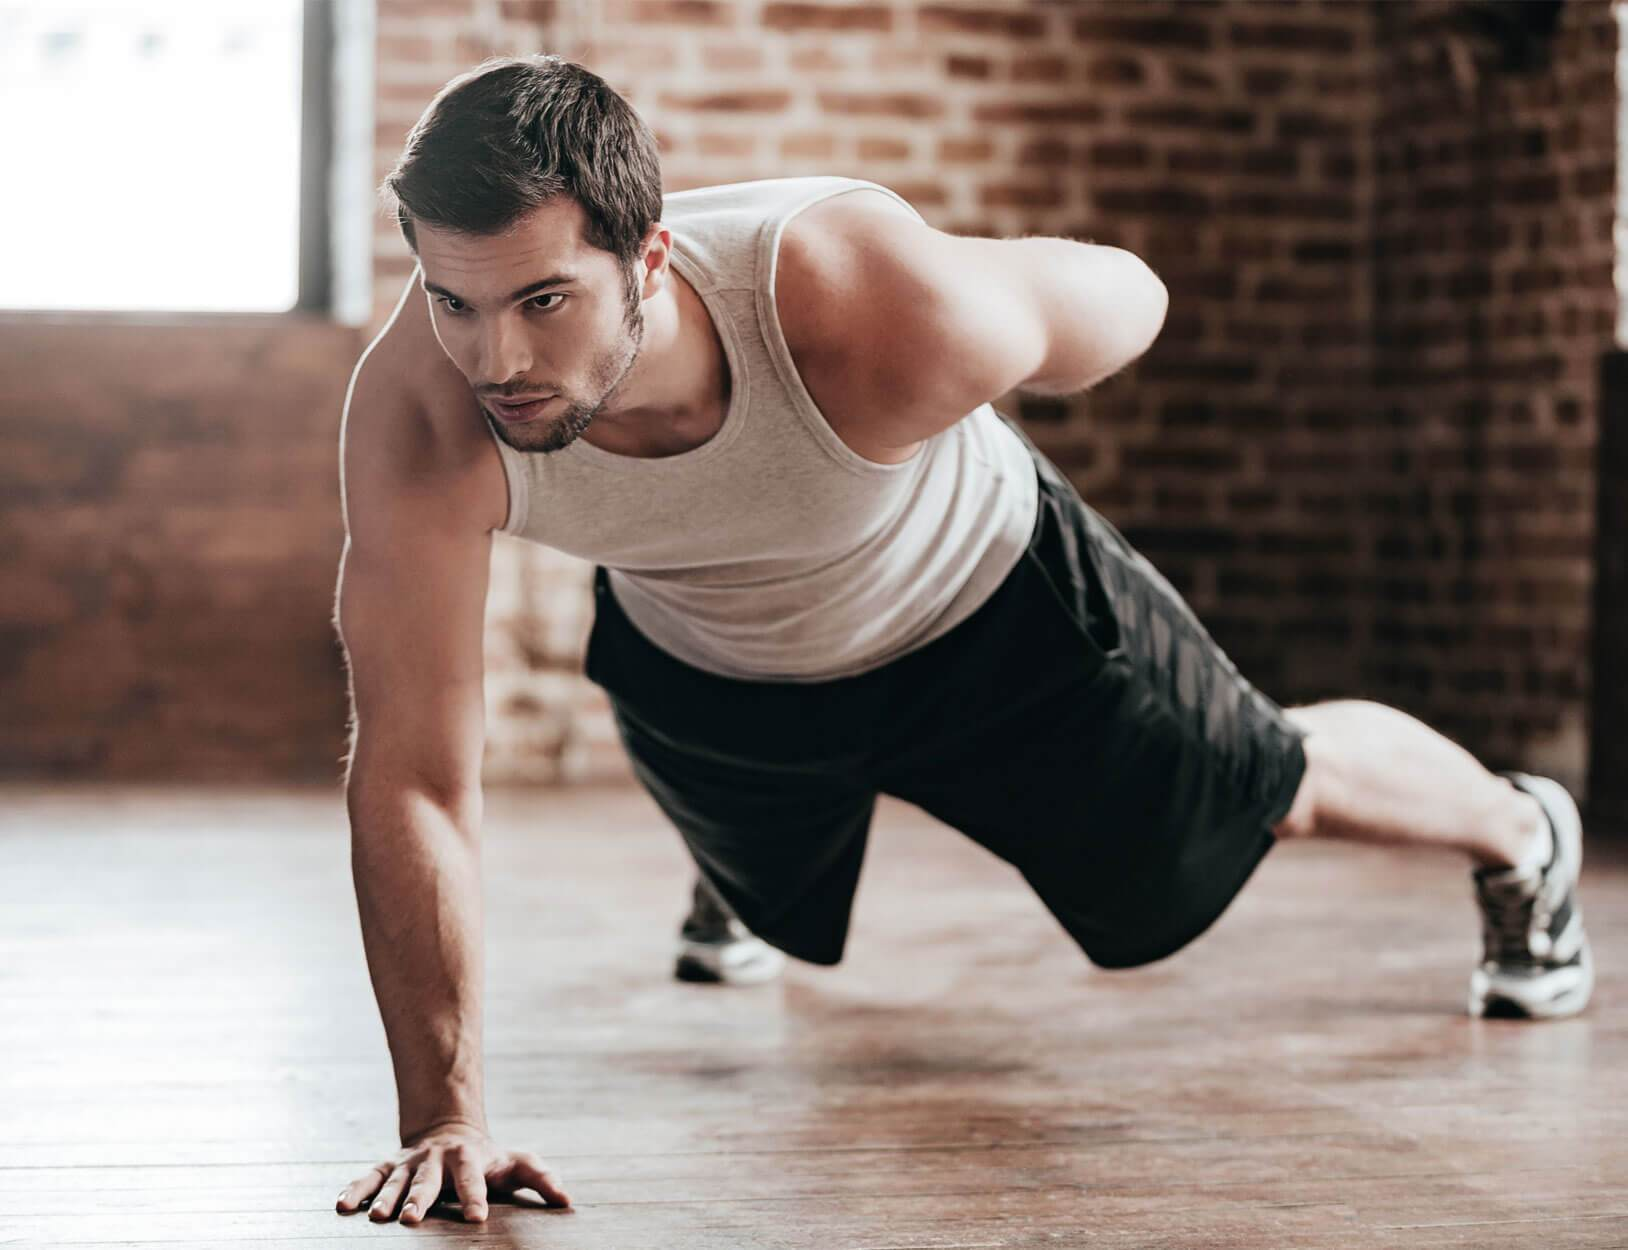 If You're busy. Add these 7 minutes exercise on your Daily Routine to stay Healthy.